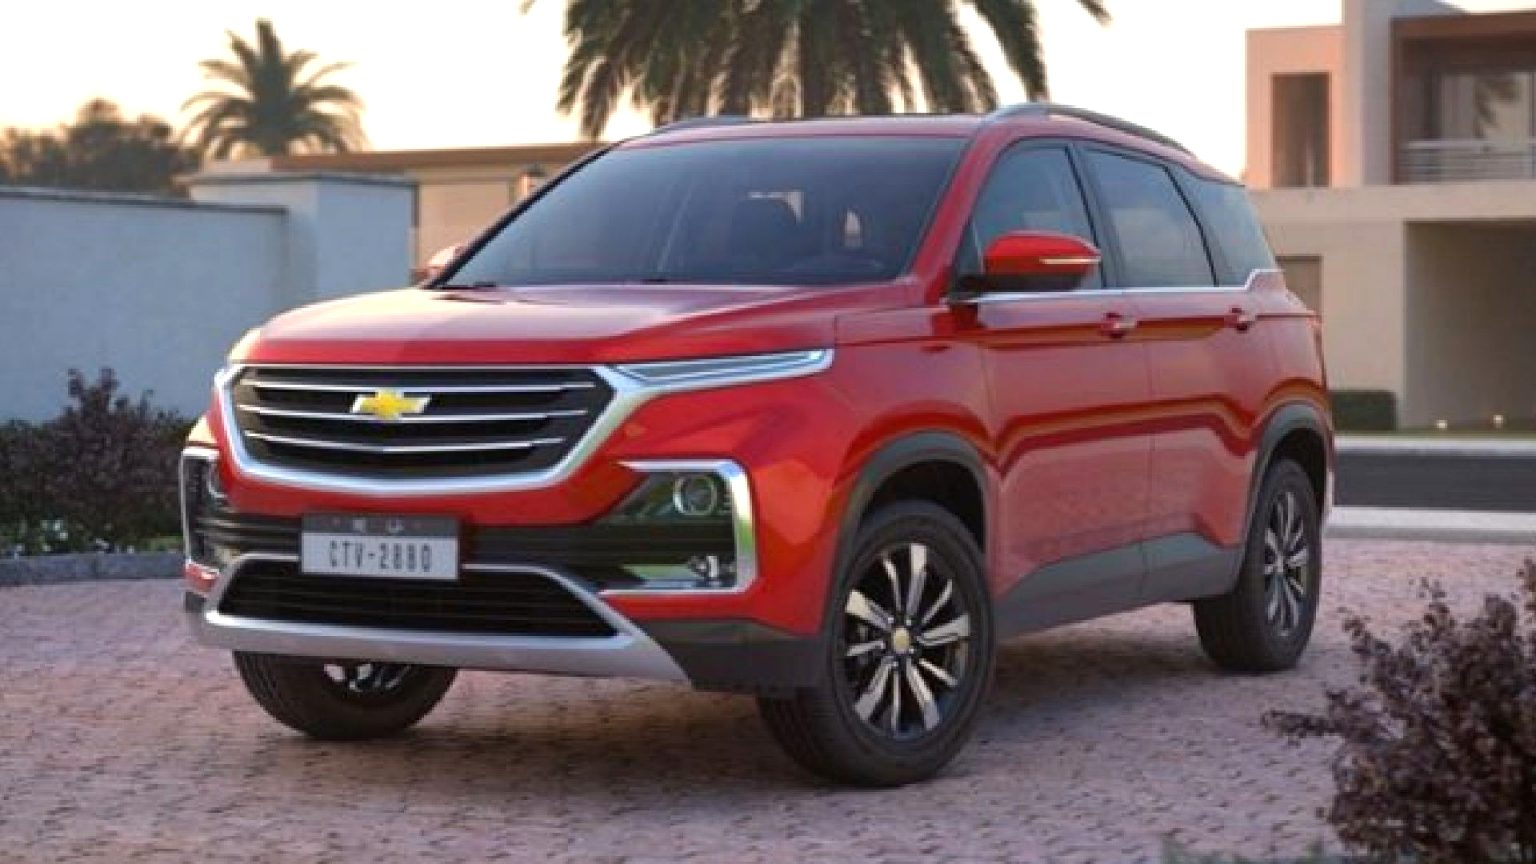 xe chevrolet captiva 2021 Concept and Review